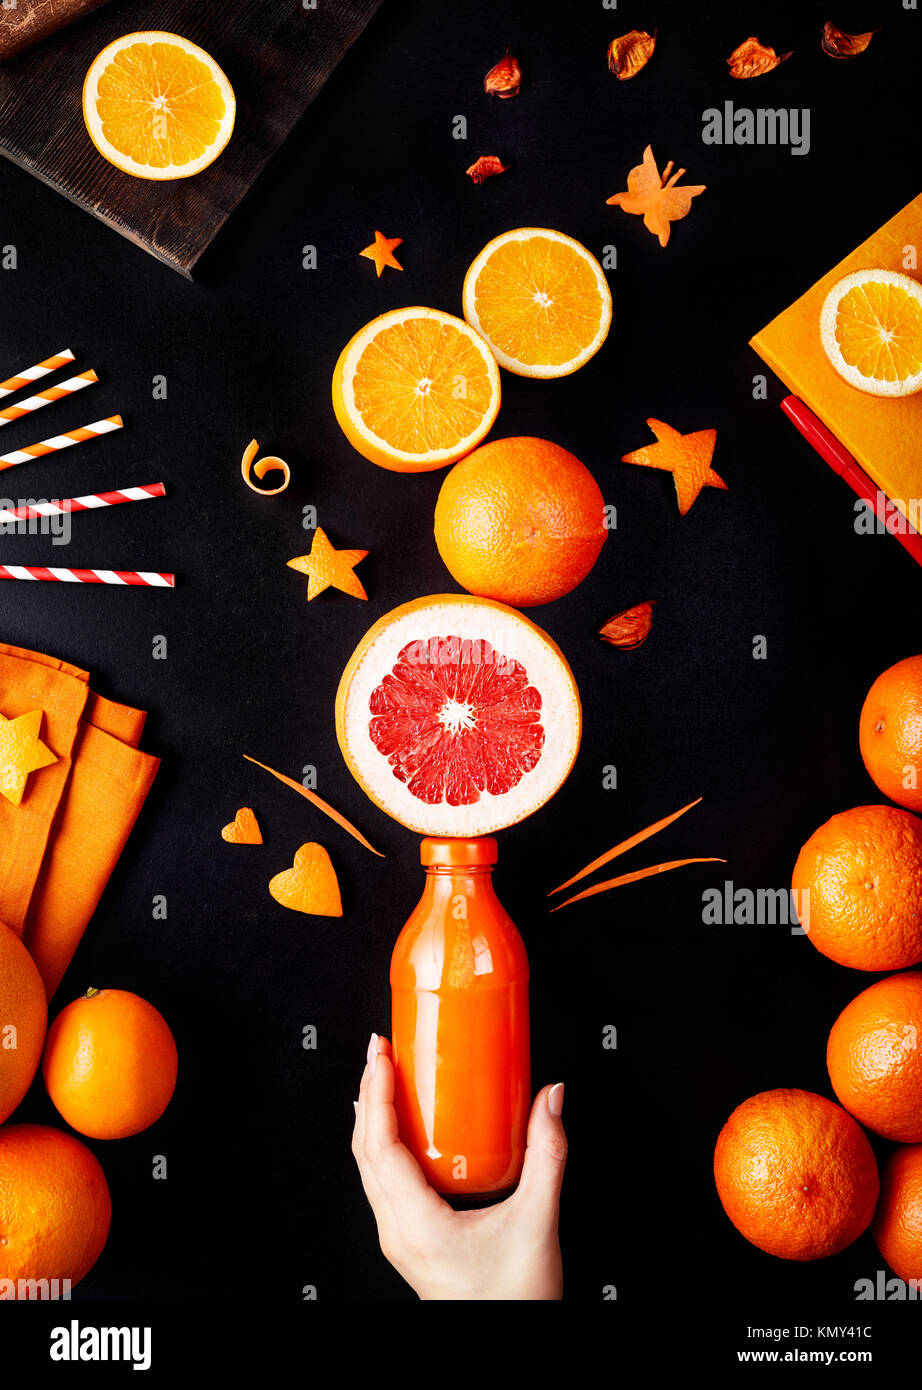 Fresh detox juice from oranges, grapefruit and lemon on black background flay lay - Stock Image